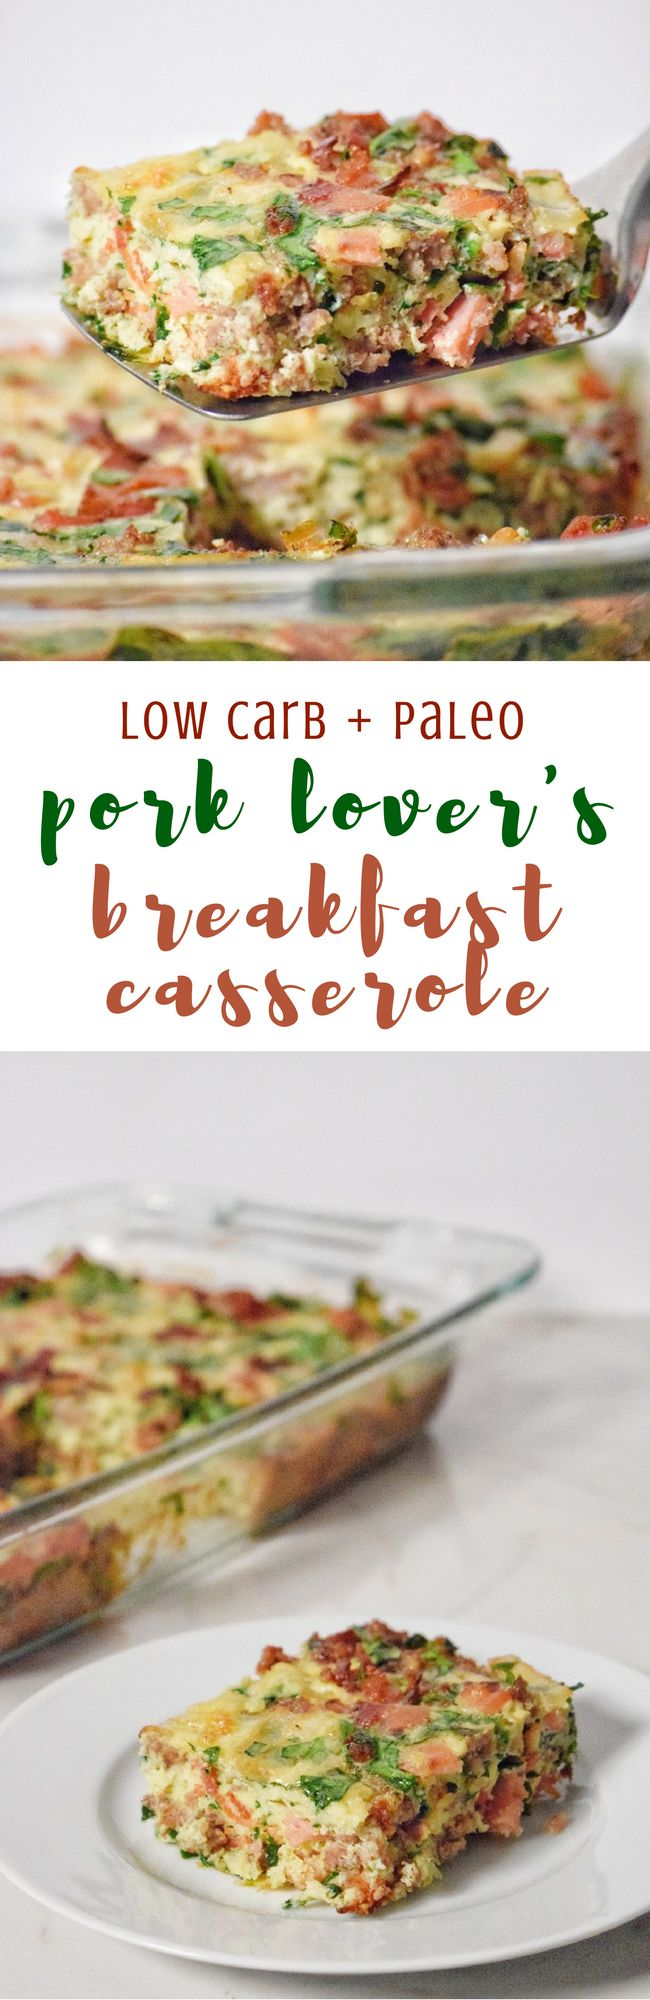 Pork Lover's Breakfast Casserole | Personally Paleo